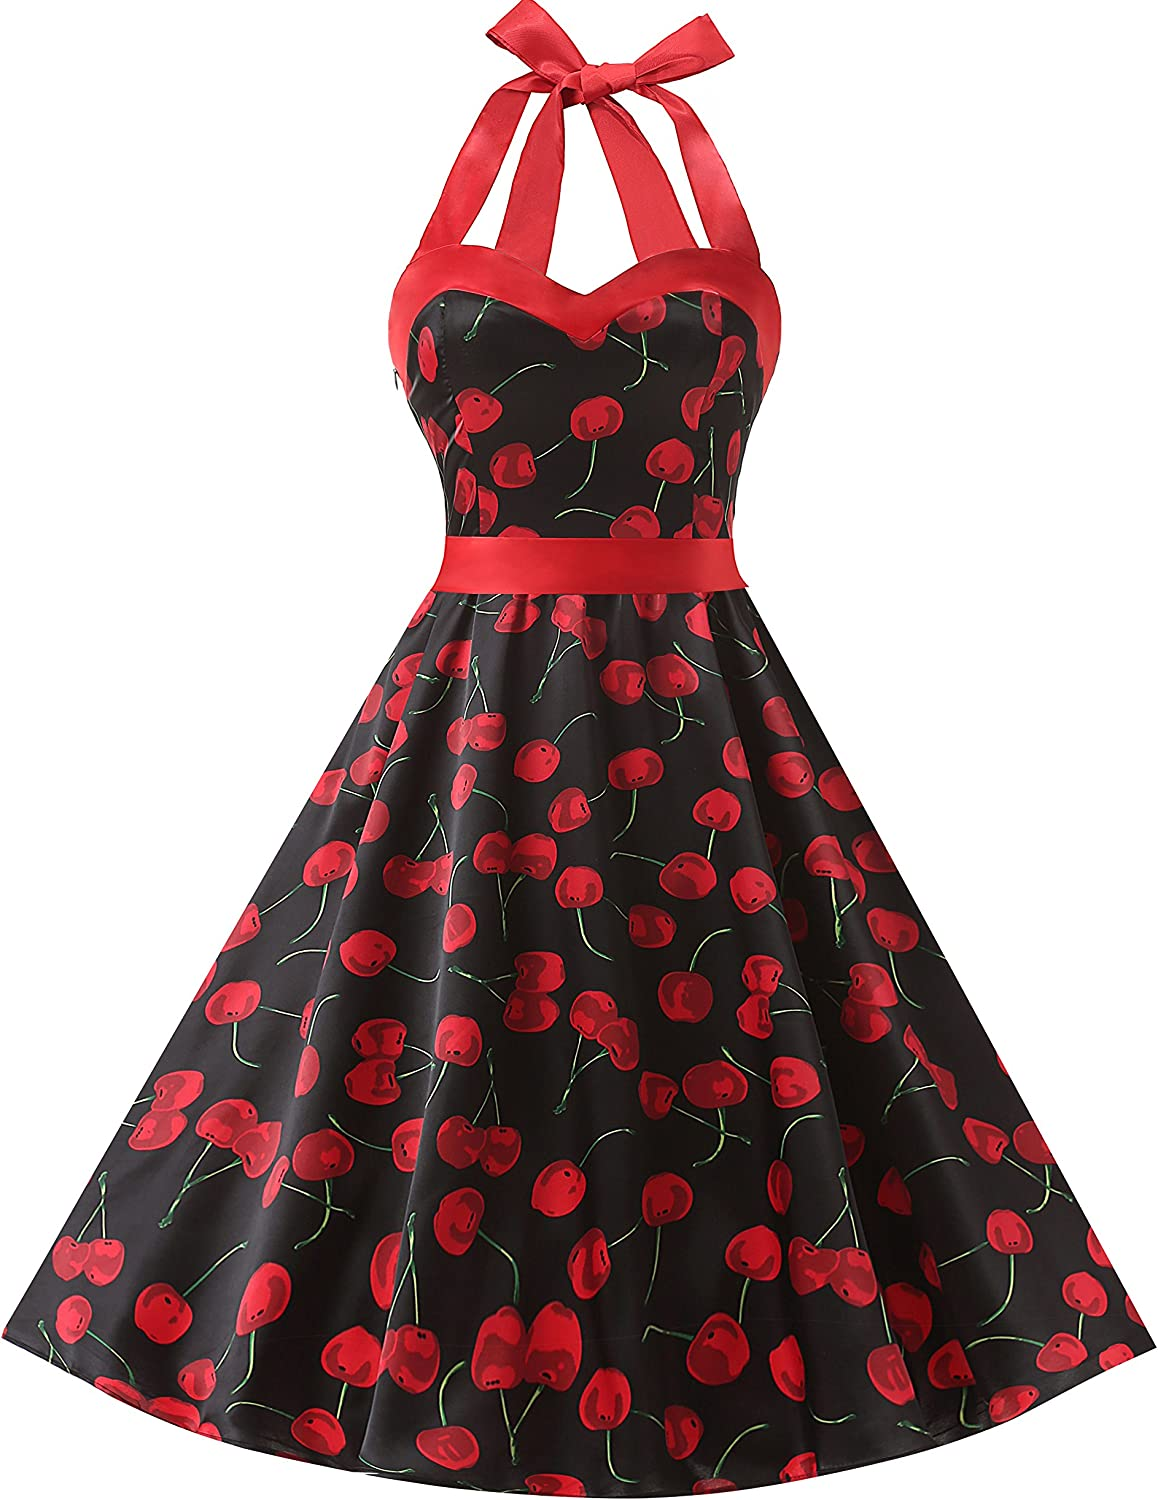 TALLA 3XL. Dresstells® Halter 50s Rockabilly Polka Dots Audrey Dress Retro Cocktail Dress Cherry Black 3XL